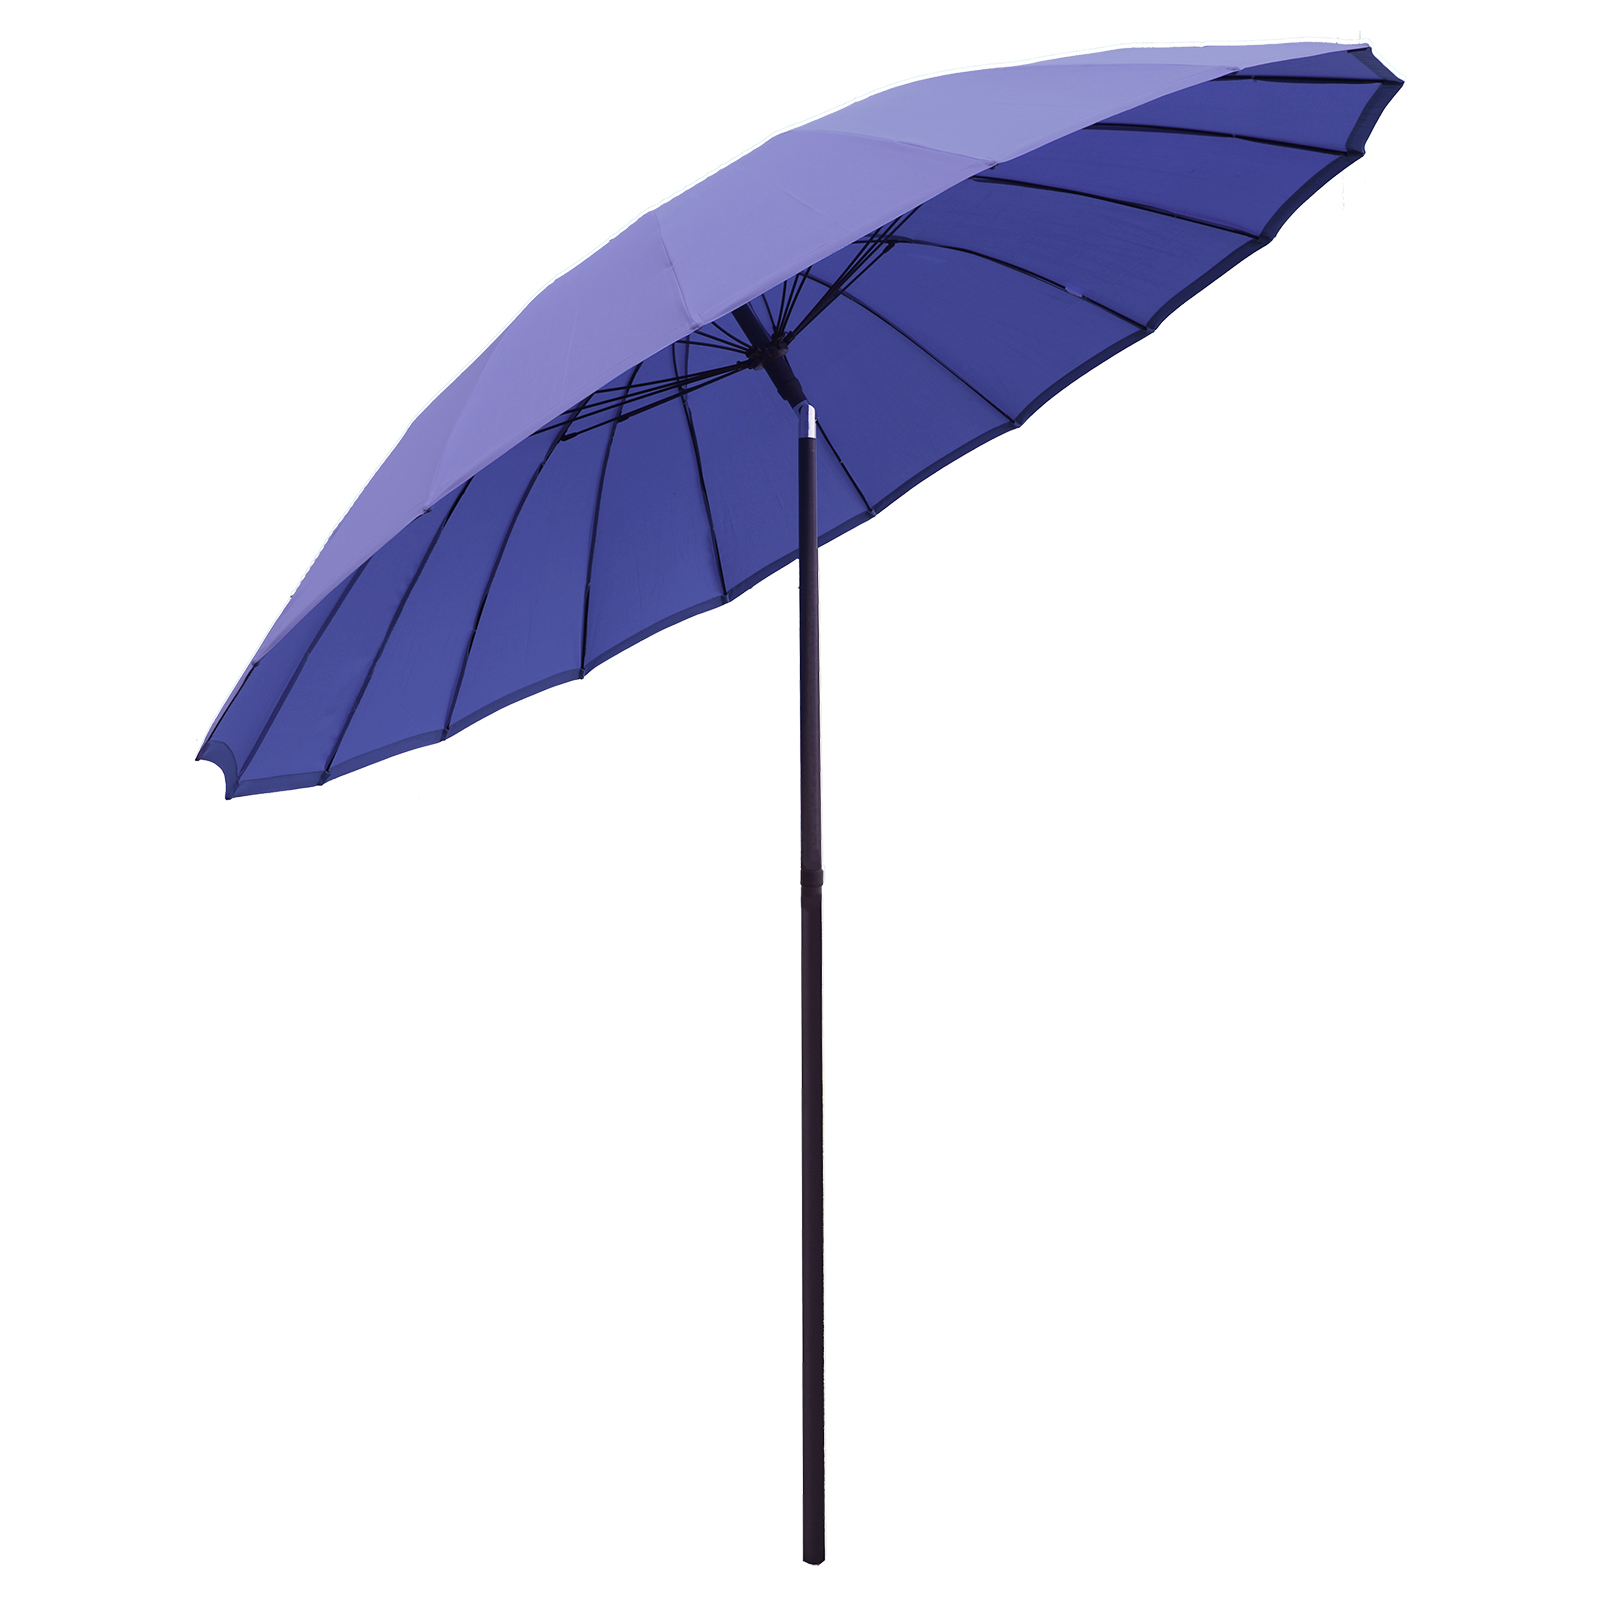 New tilting shanghai parasol umbrella sun shade for for Lawn chair with umbrella